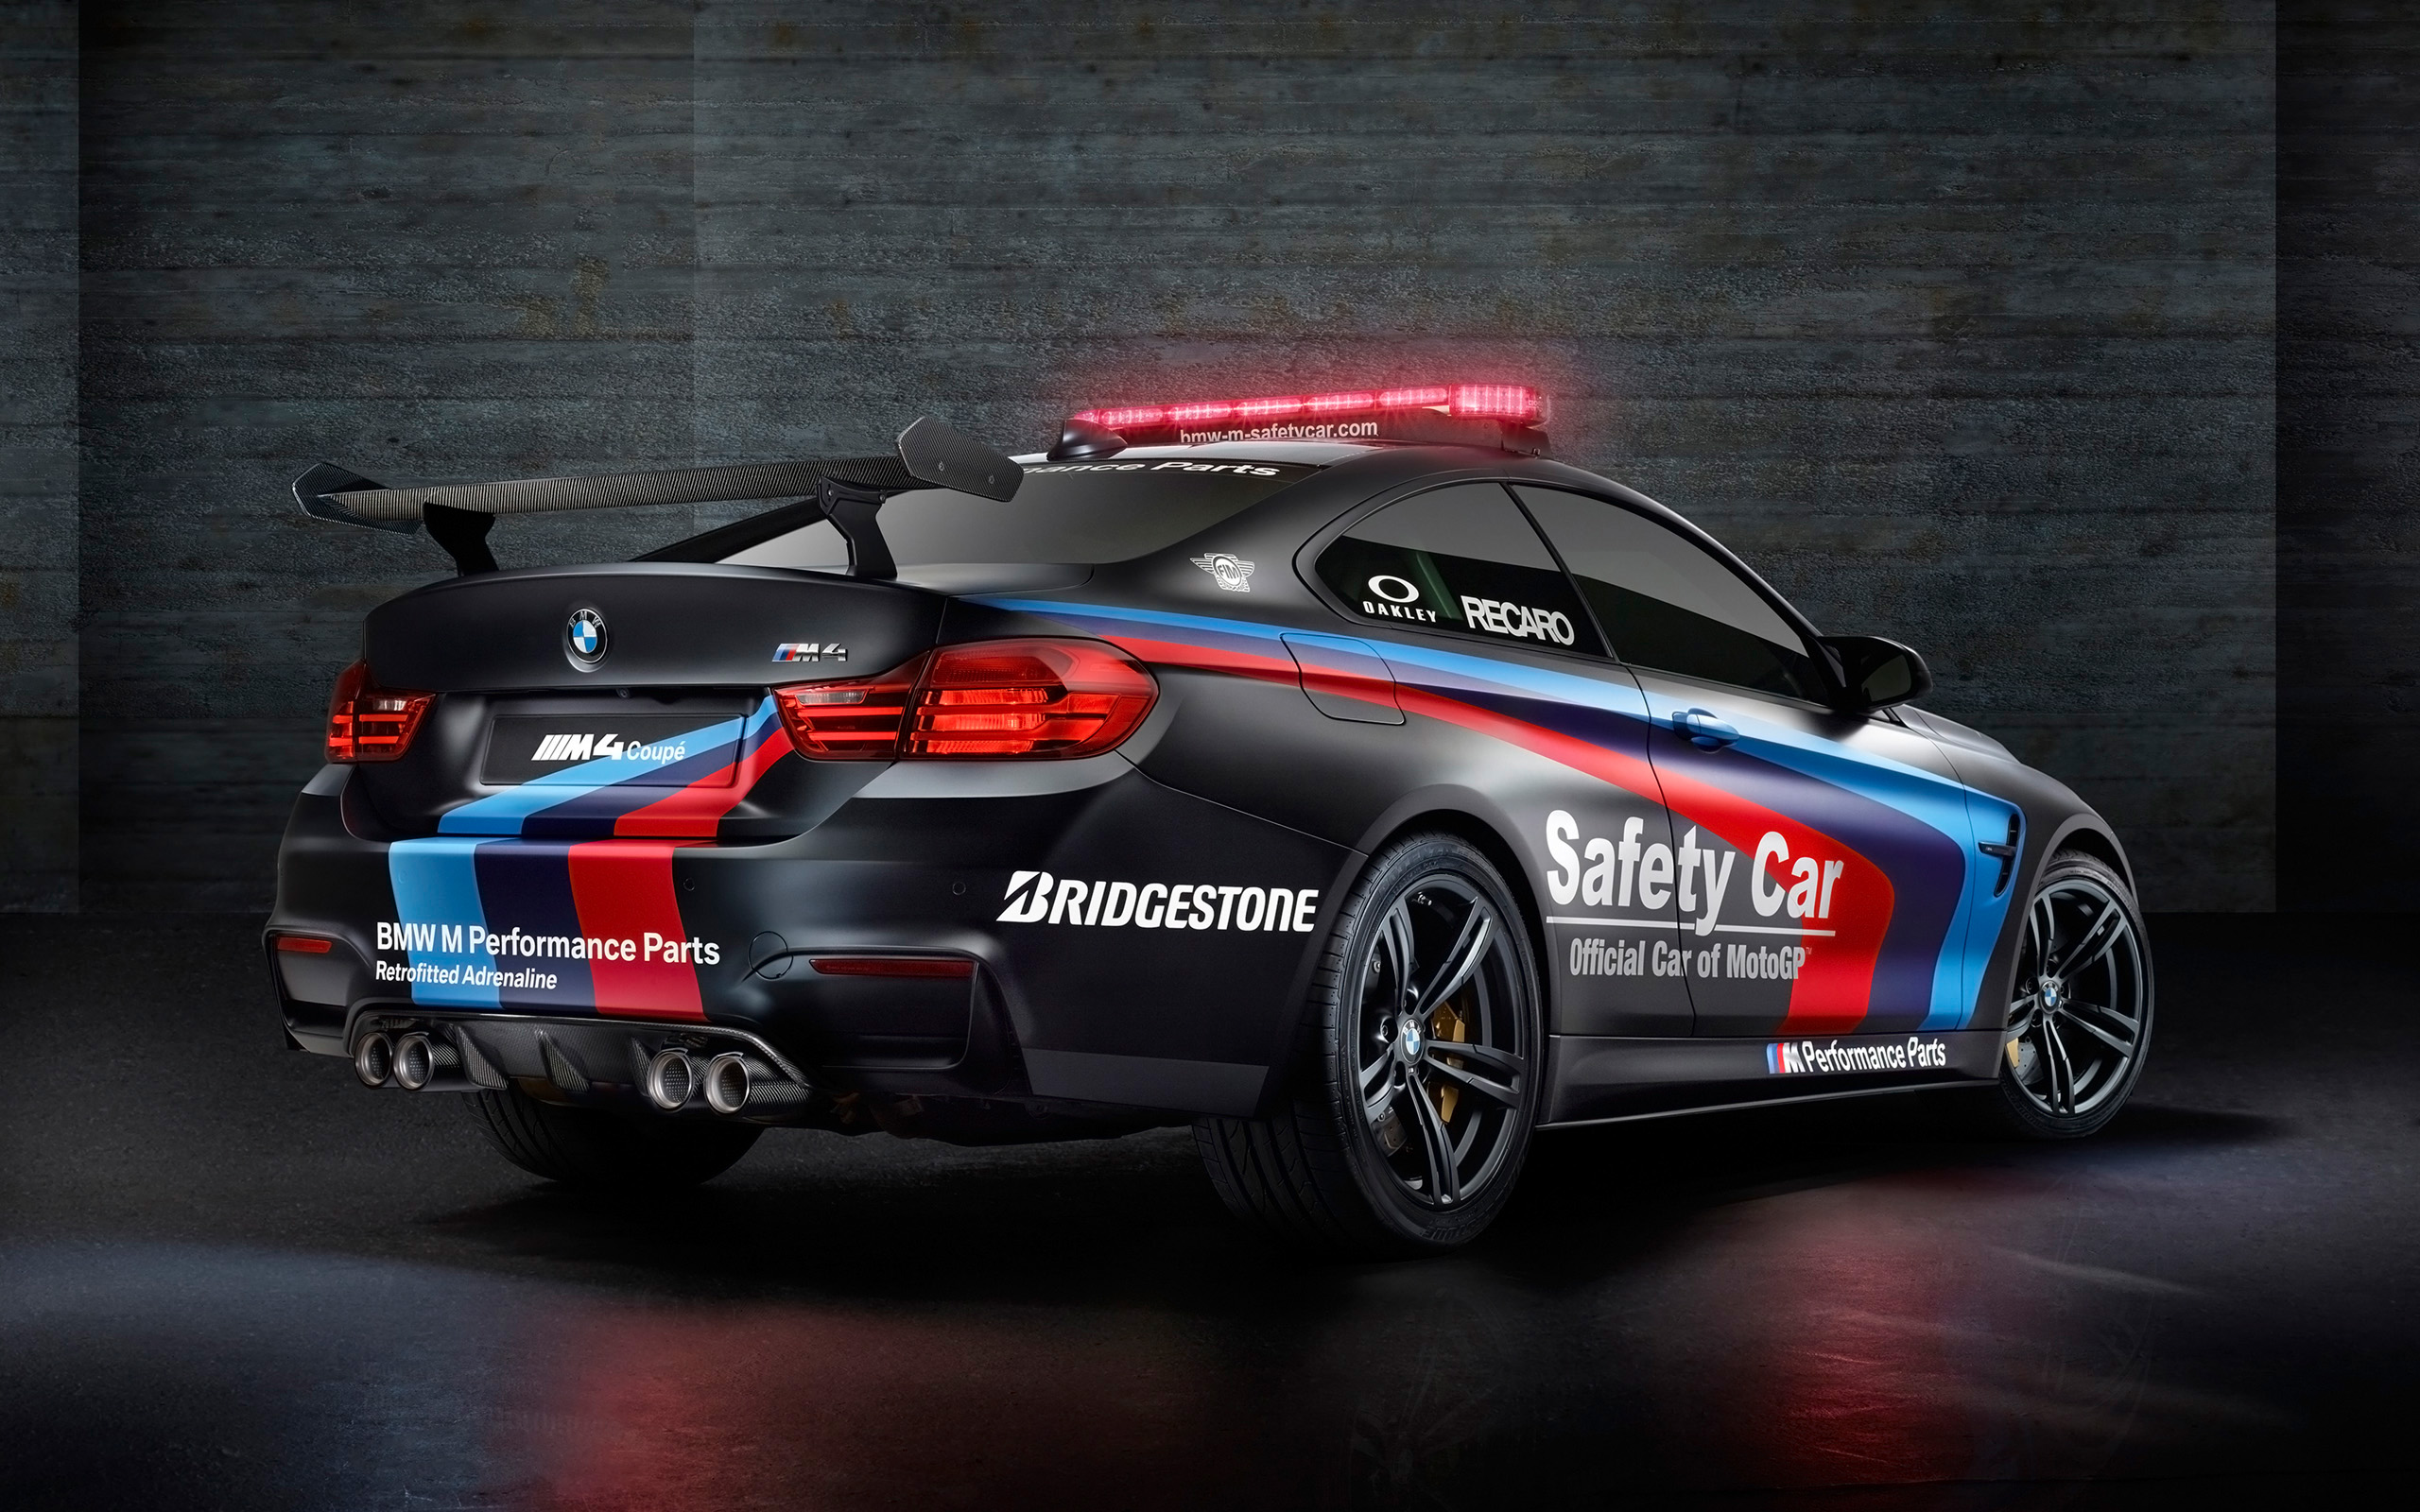 2015 bmw m4 motogp safety car 3 wallpaper hd car. Black Bedroom Furniture Sets. Home Design Ideas